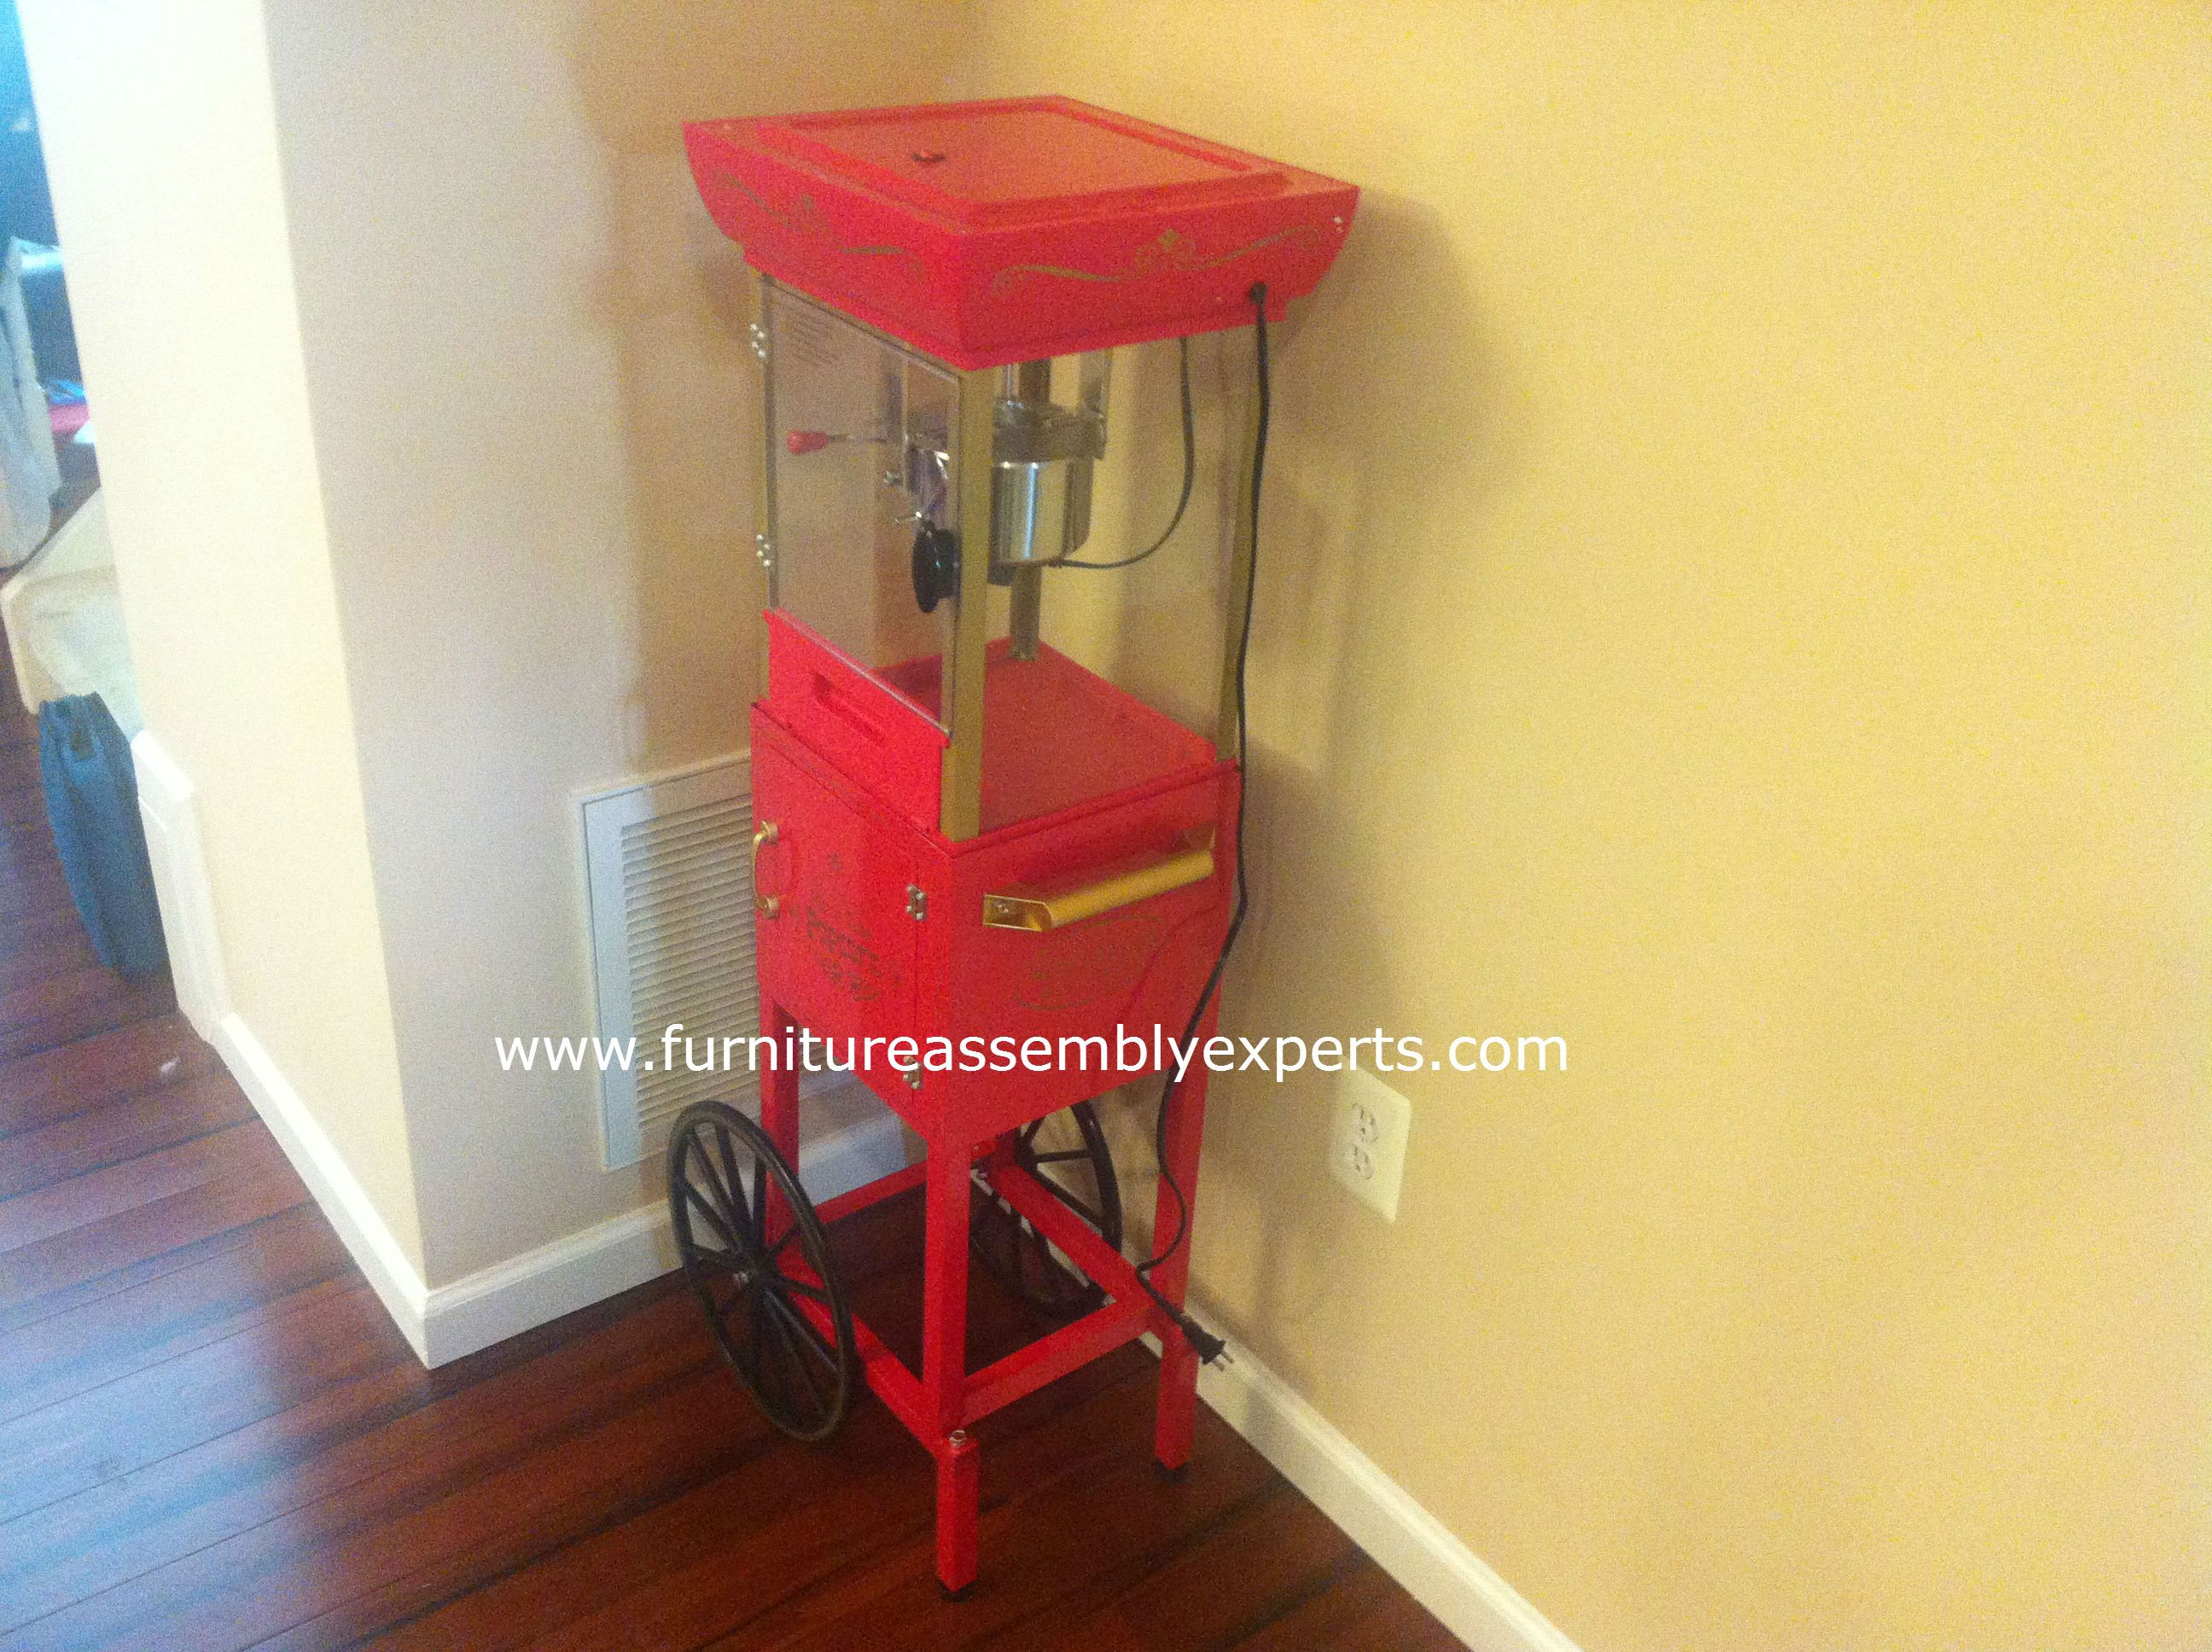 Walmart Nostalgia Electrics Vintage Collection Popcorn Cart Assembled In  Fairfax VA By Furniture Assembly Experts LLC